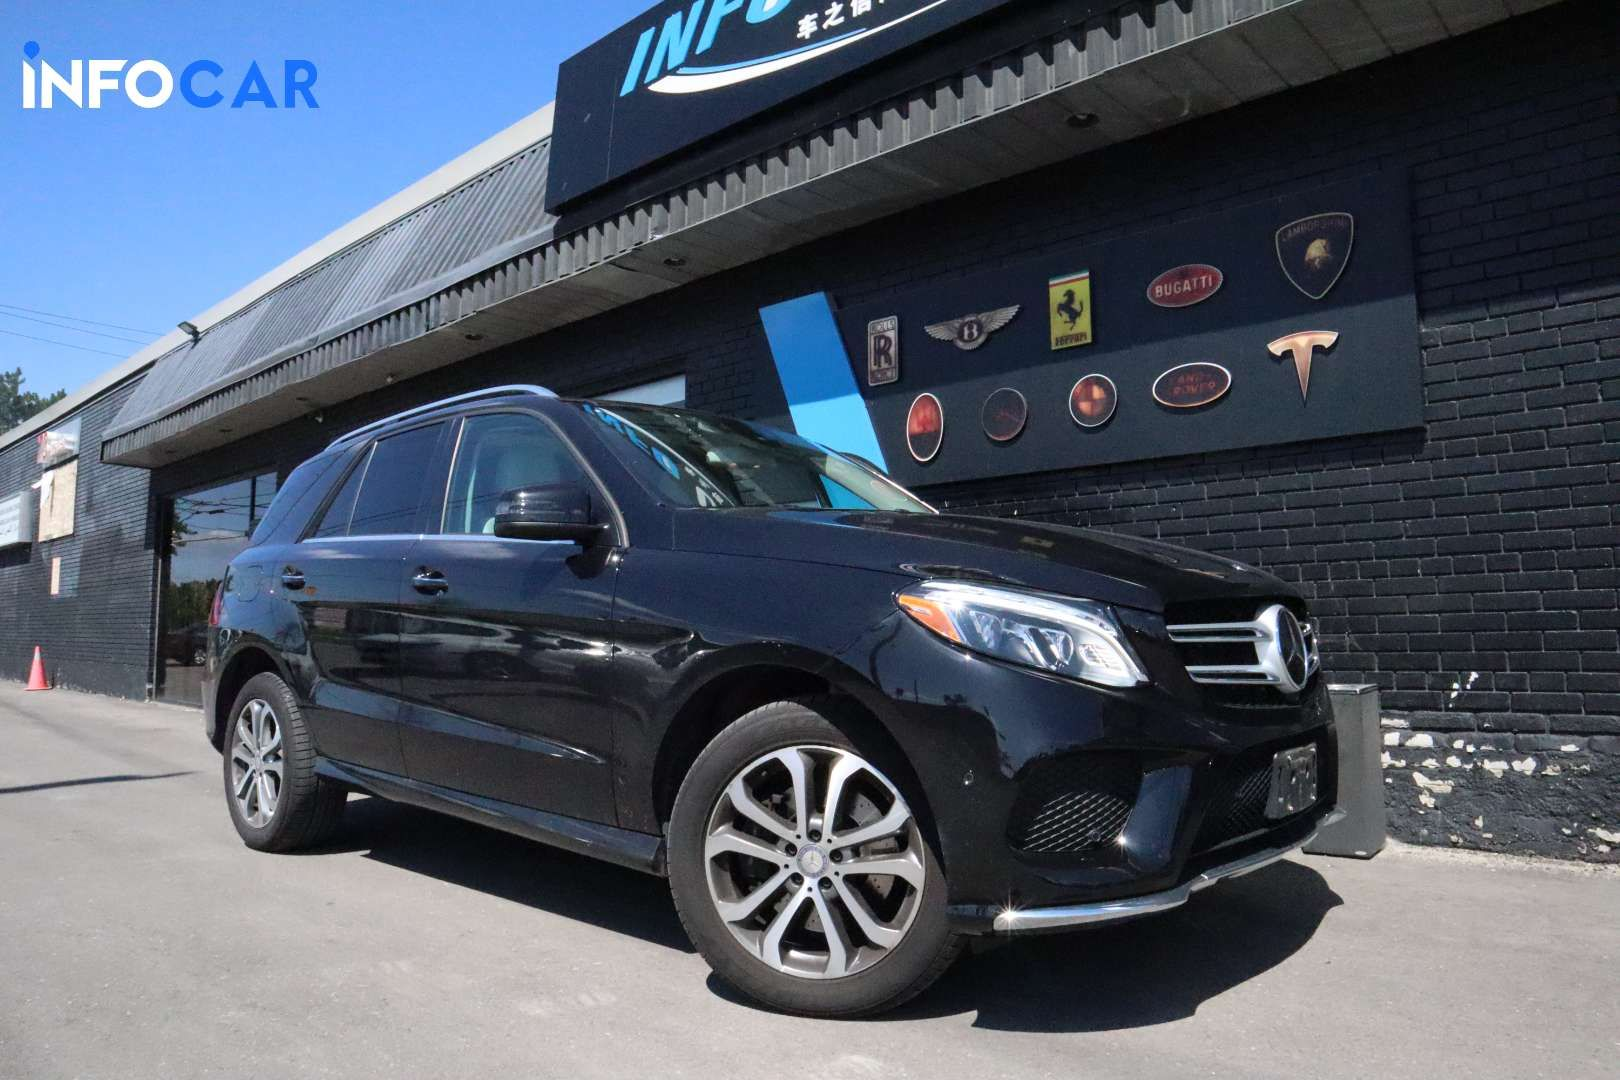 2016 Mercedes-Benz GLE-Class 350D - INFOCAR - Toronto's Most Comprehensive New and Used Auto Trading Platform